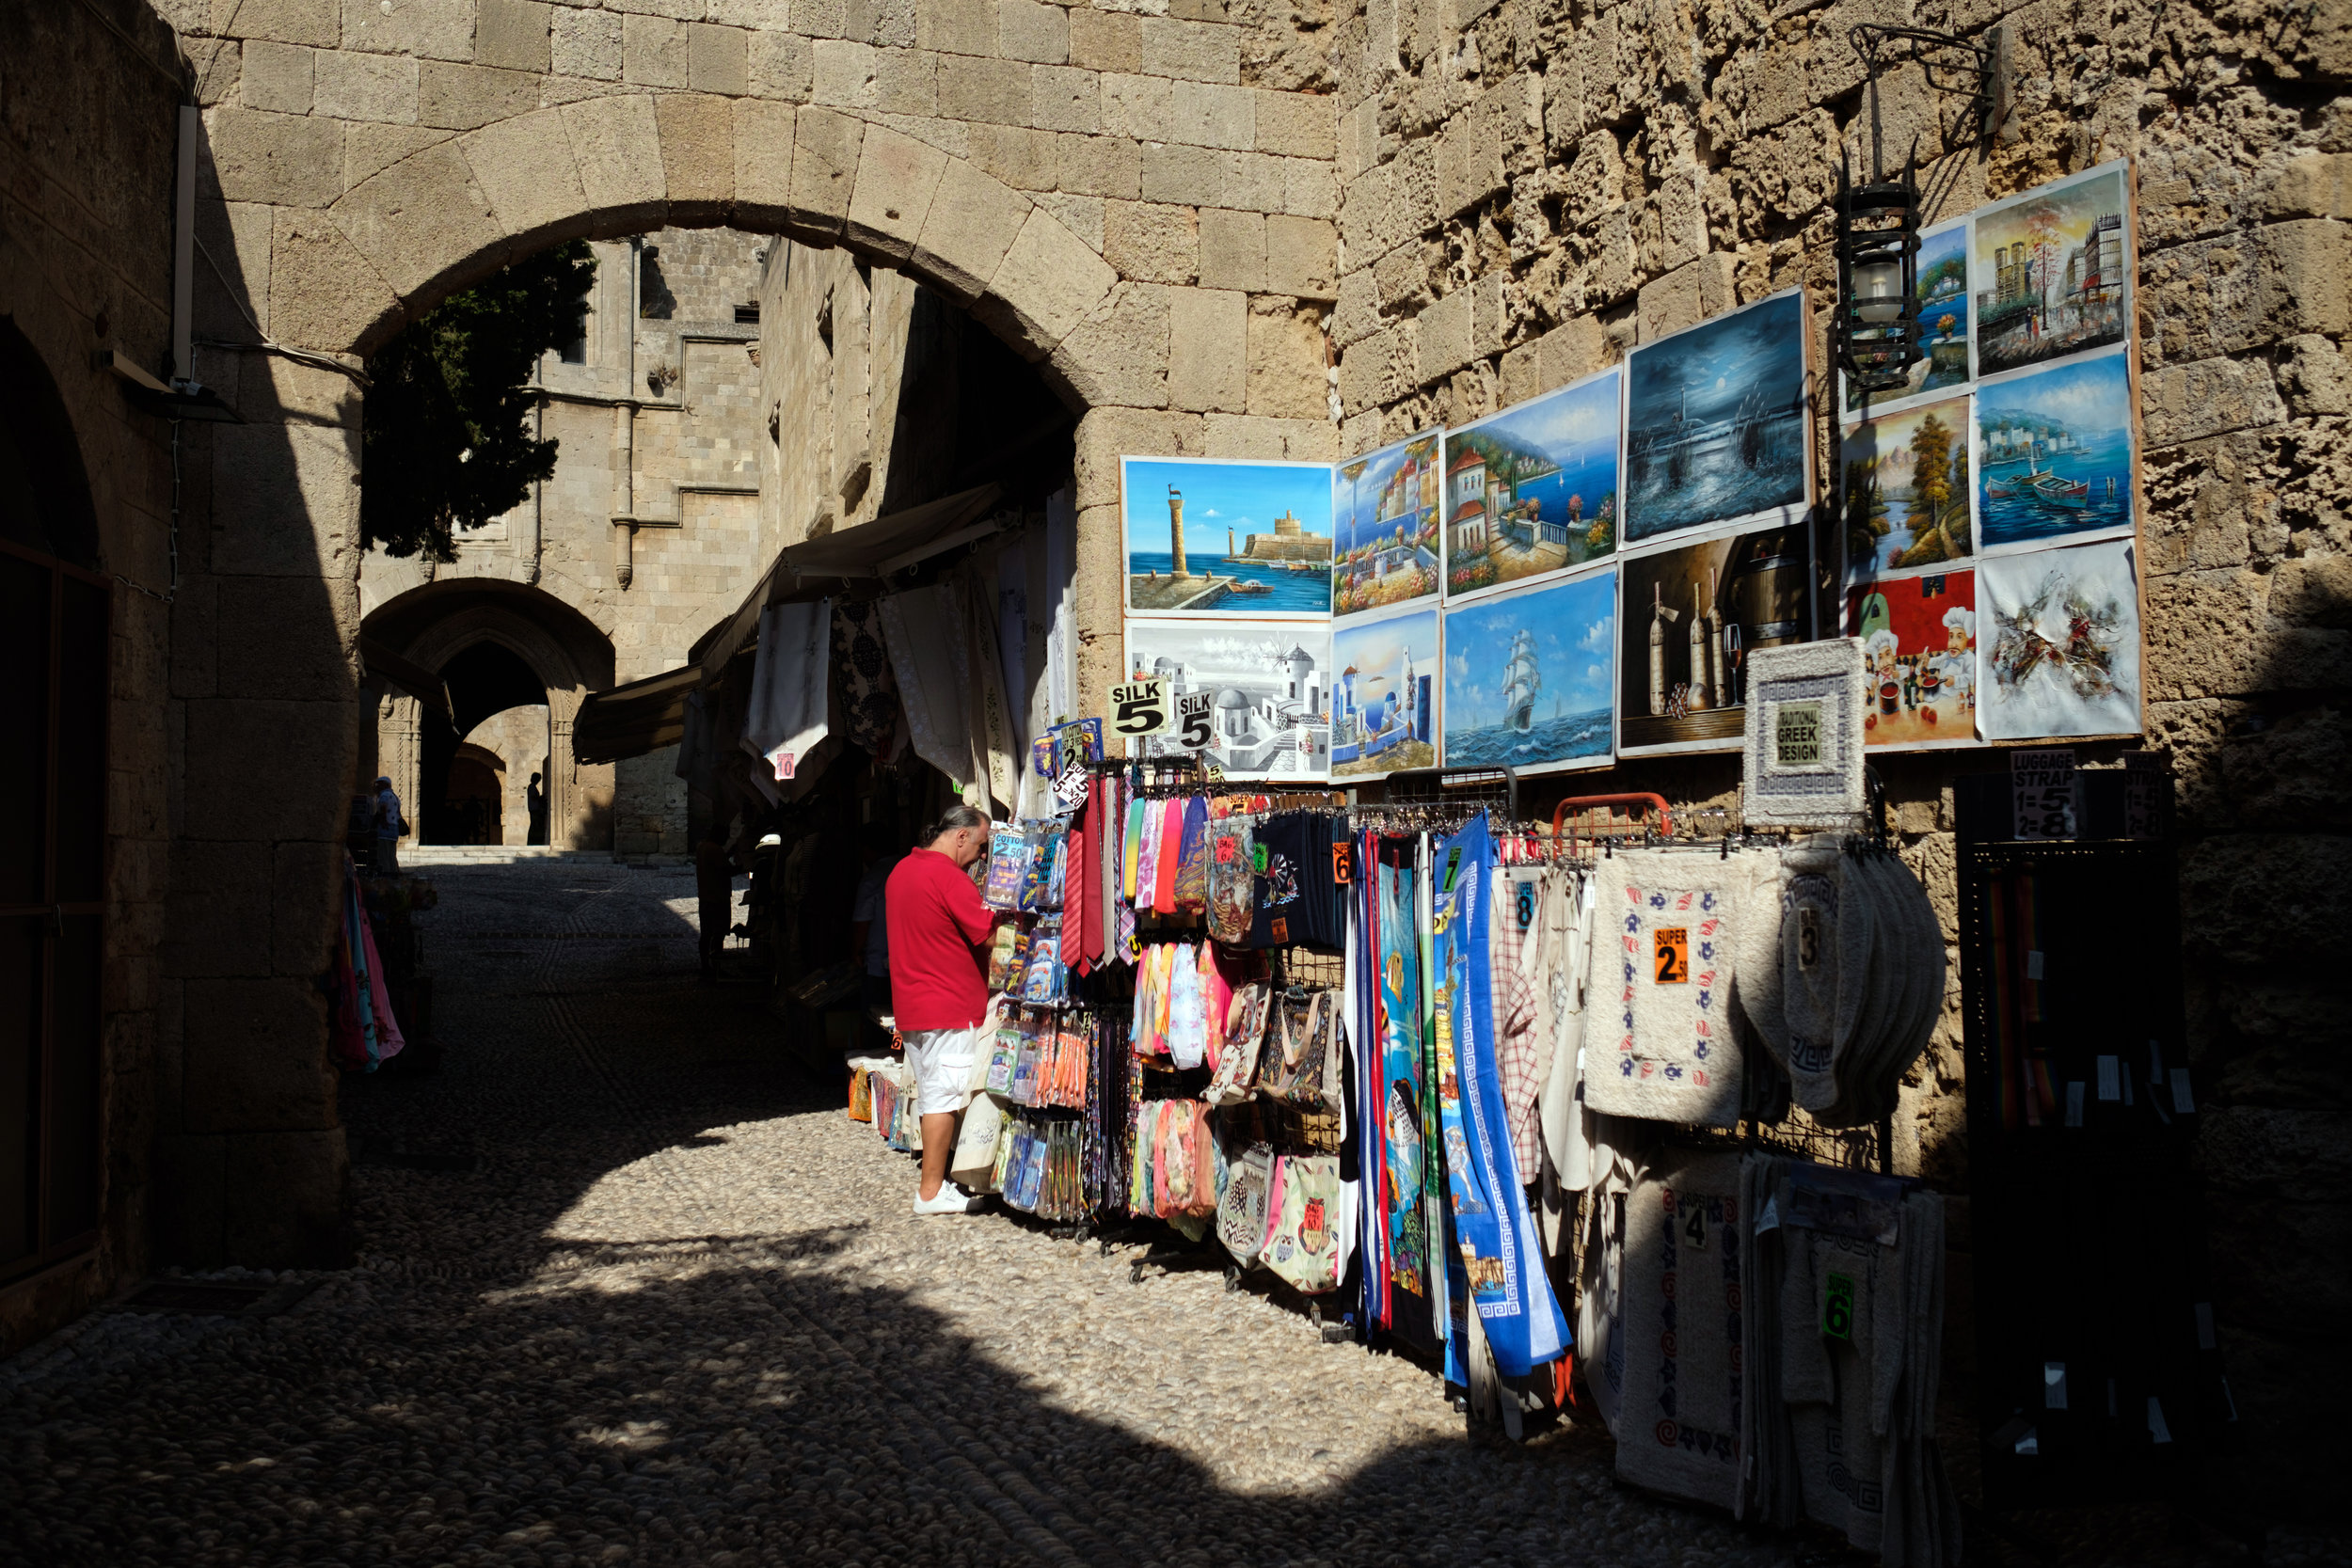 Shooping outside the Castle of the Old Town in Rhodes, Greece